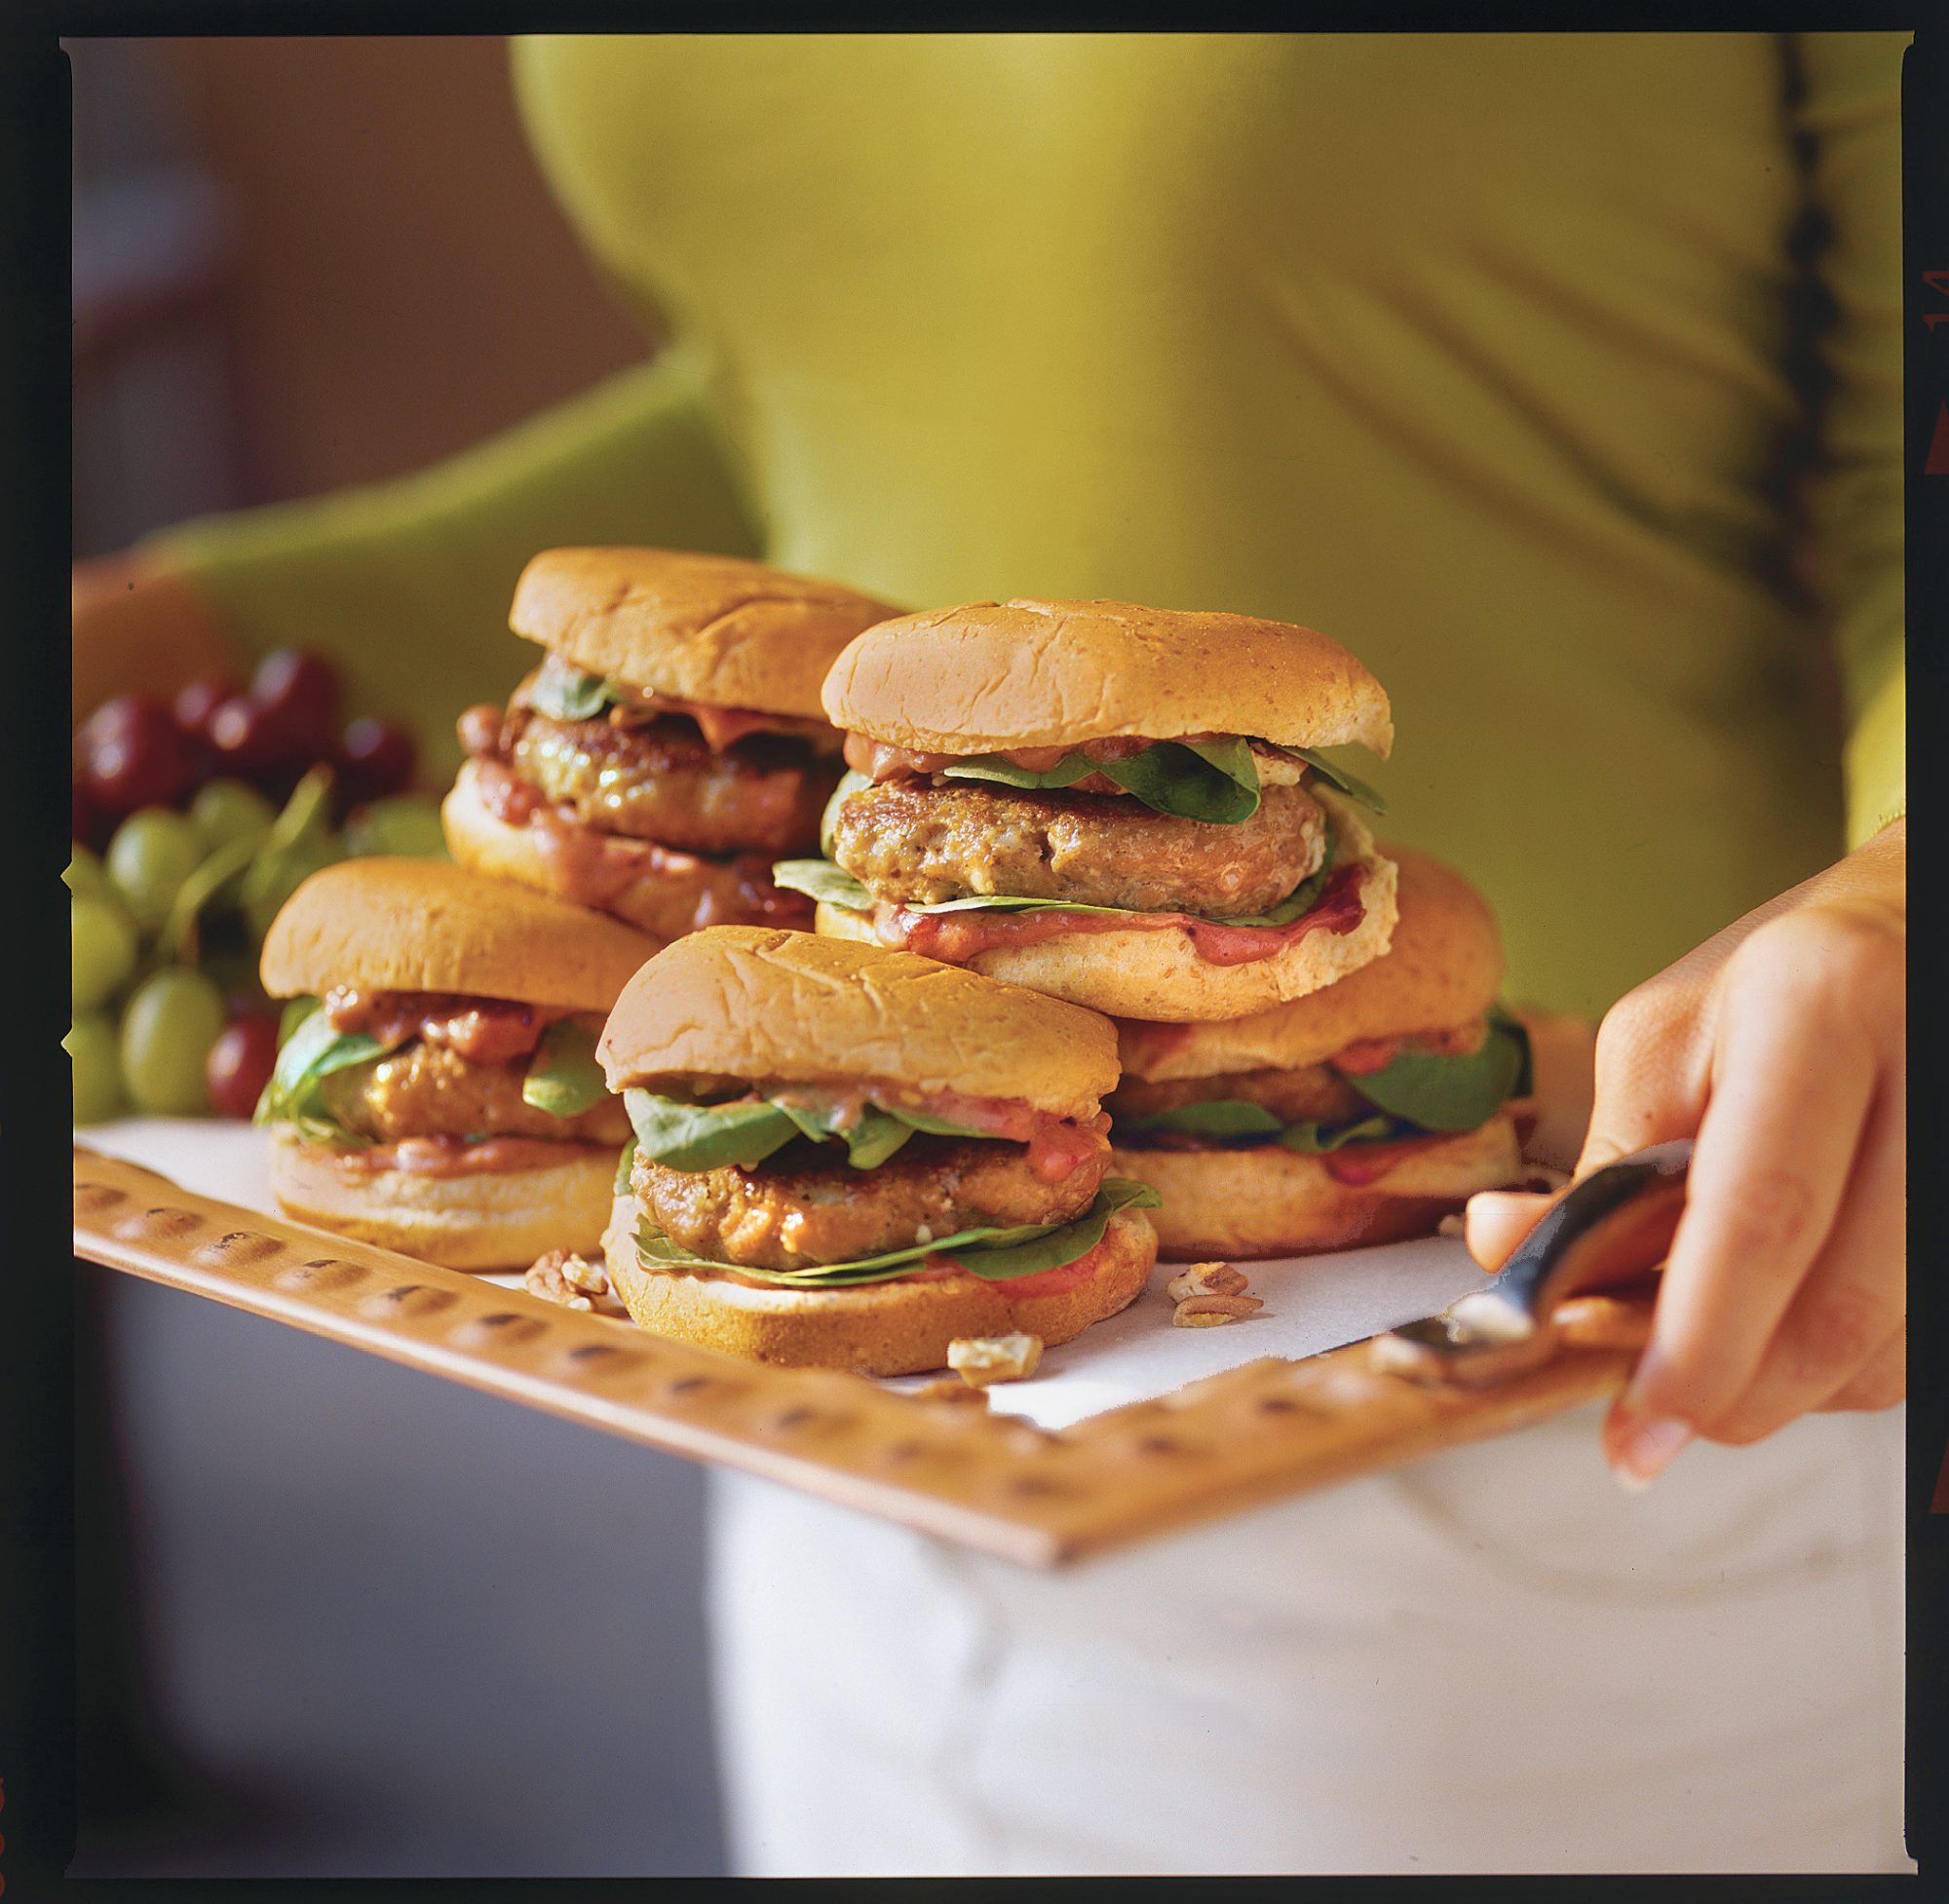 Grilled Burgers and Sanwiches Recipes: Toasted Pecan, Cranberry, and Gorgonzola Turkey Burgers